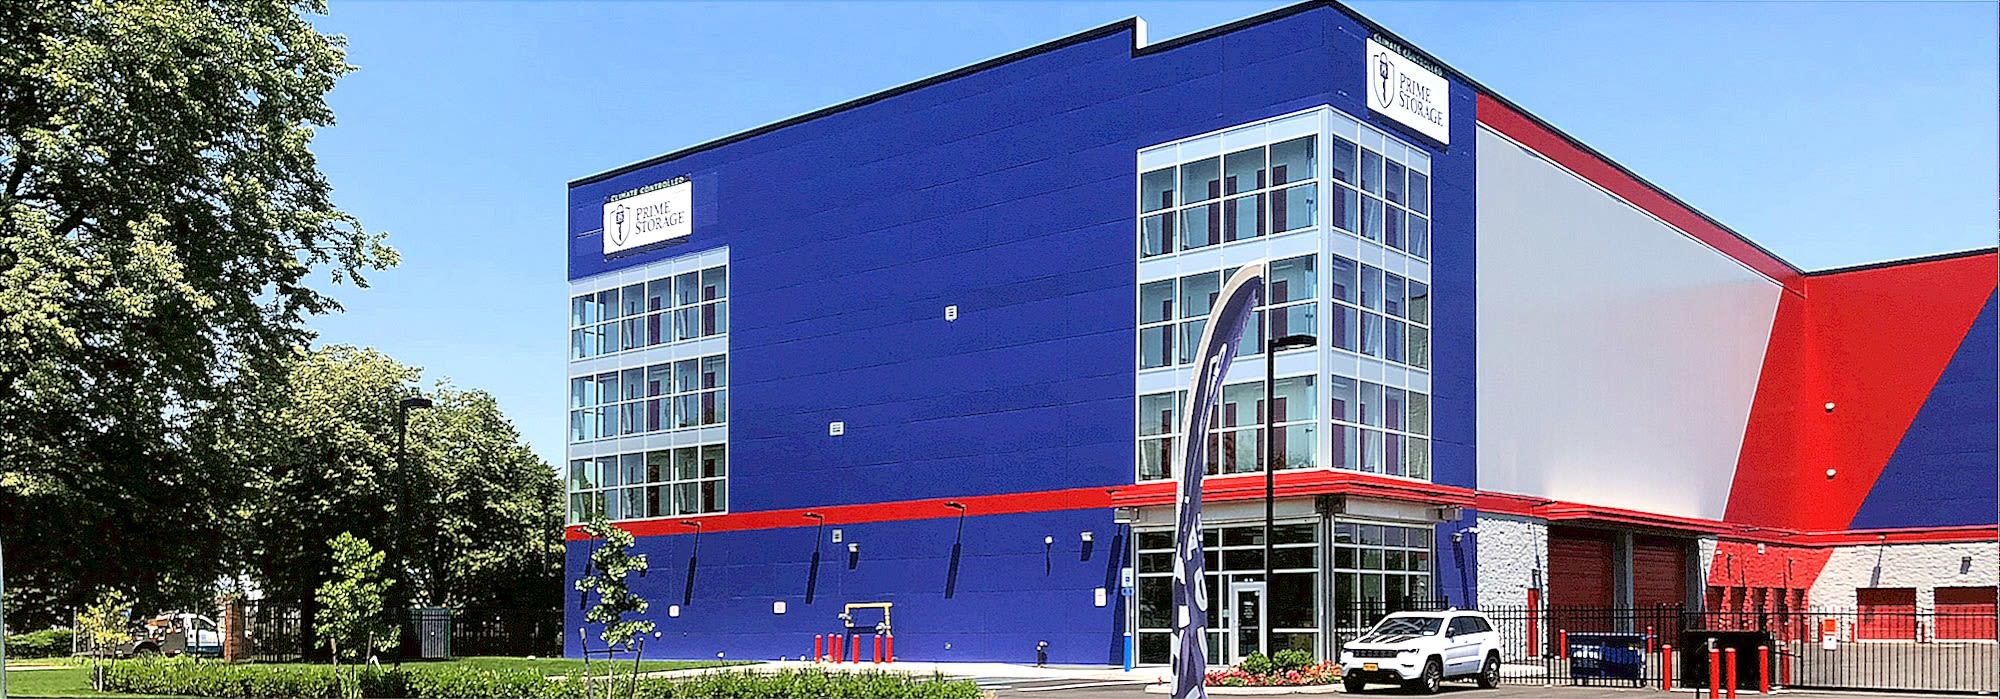 Exterior image of Prime Storage in Queens, NY